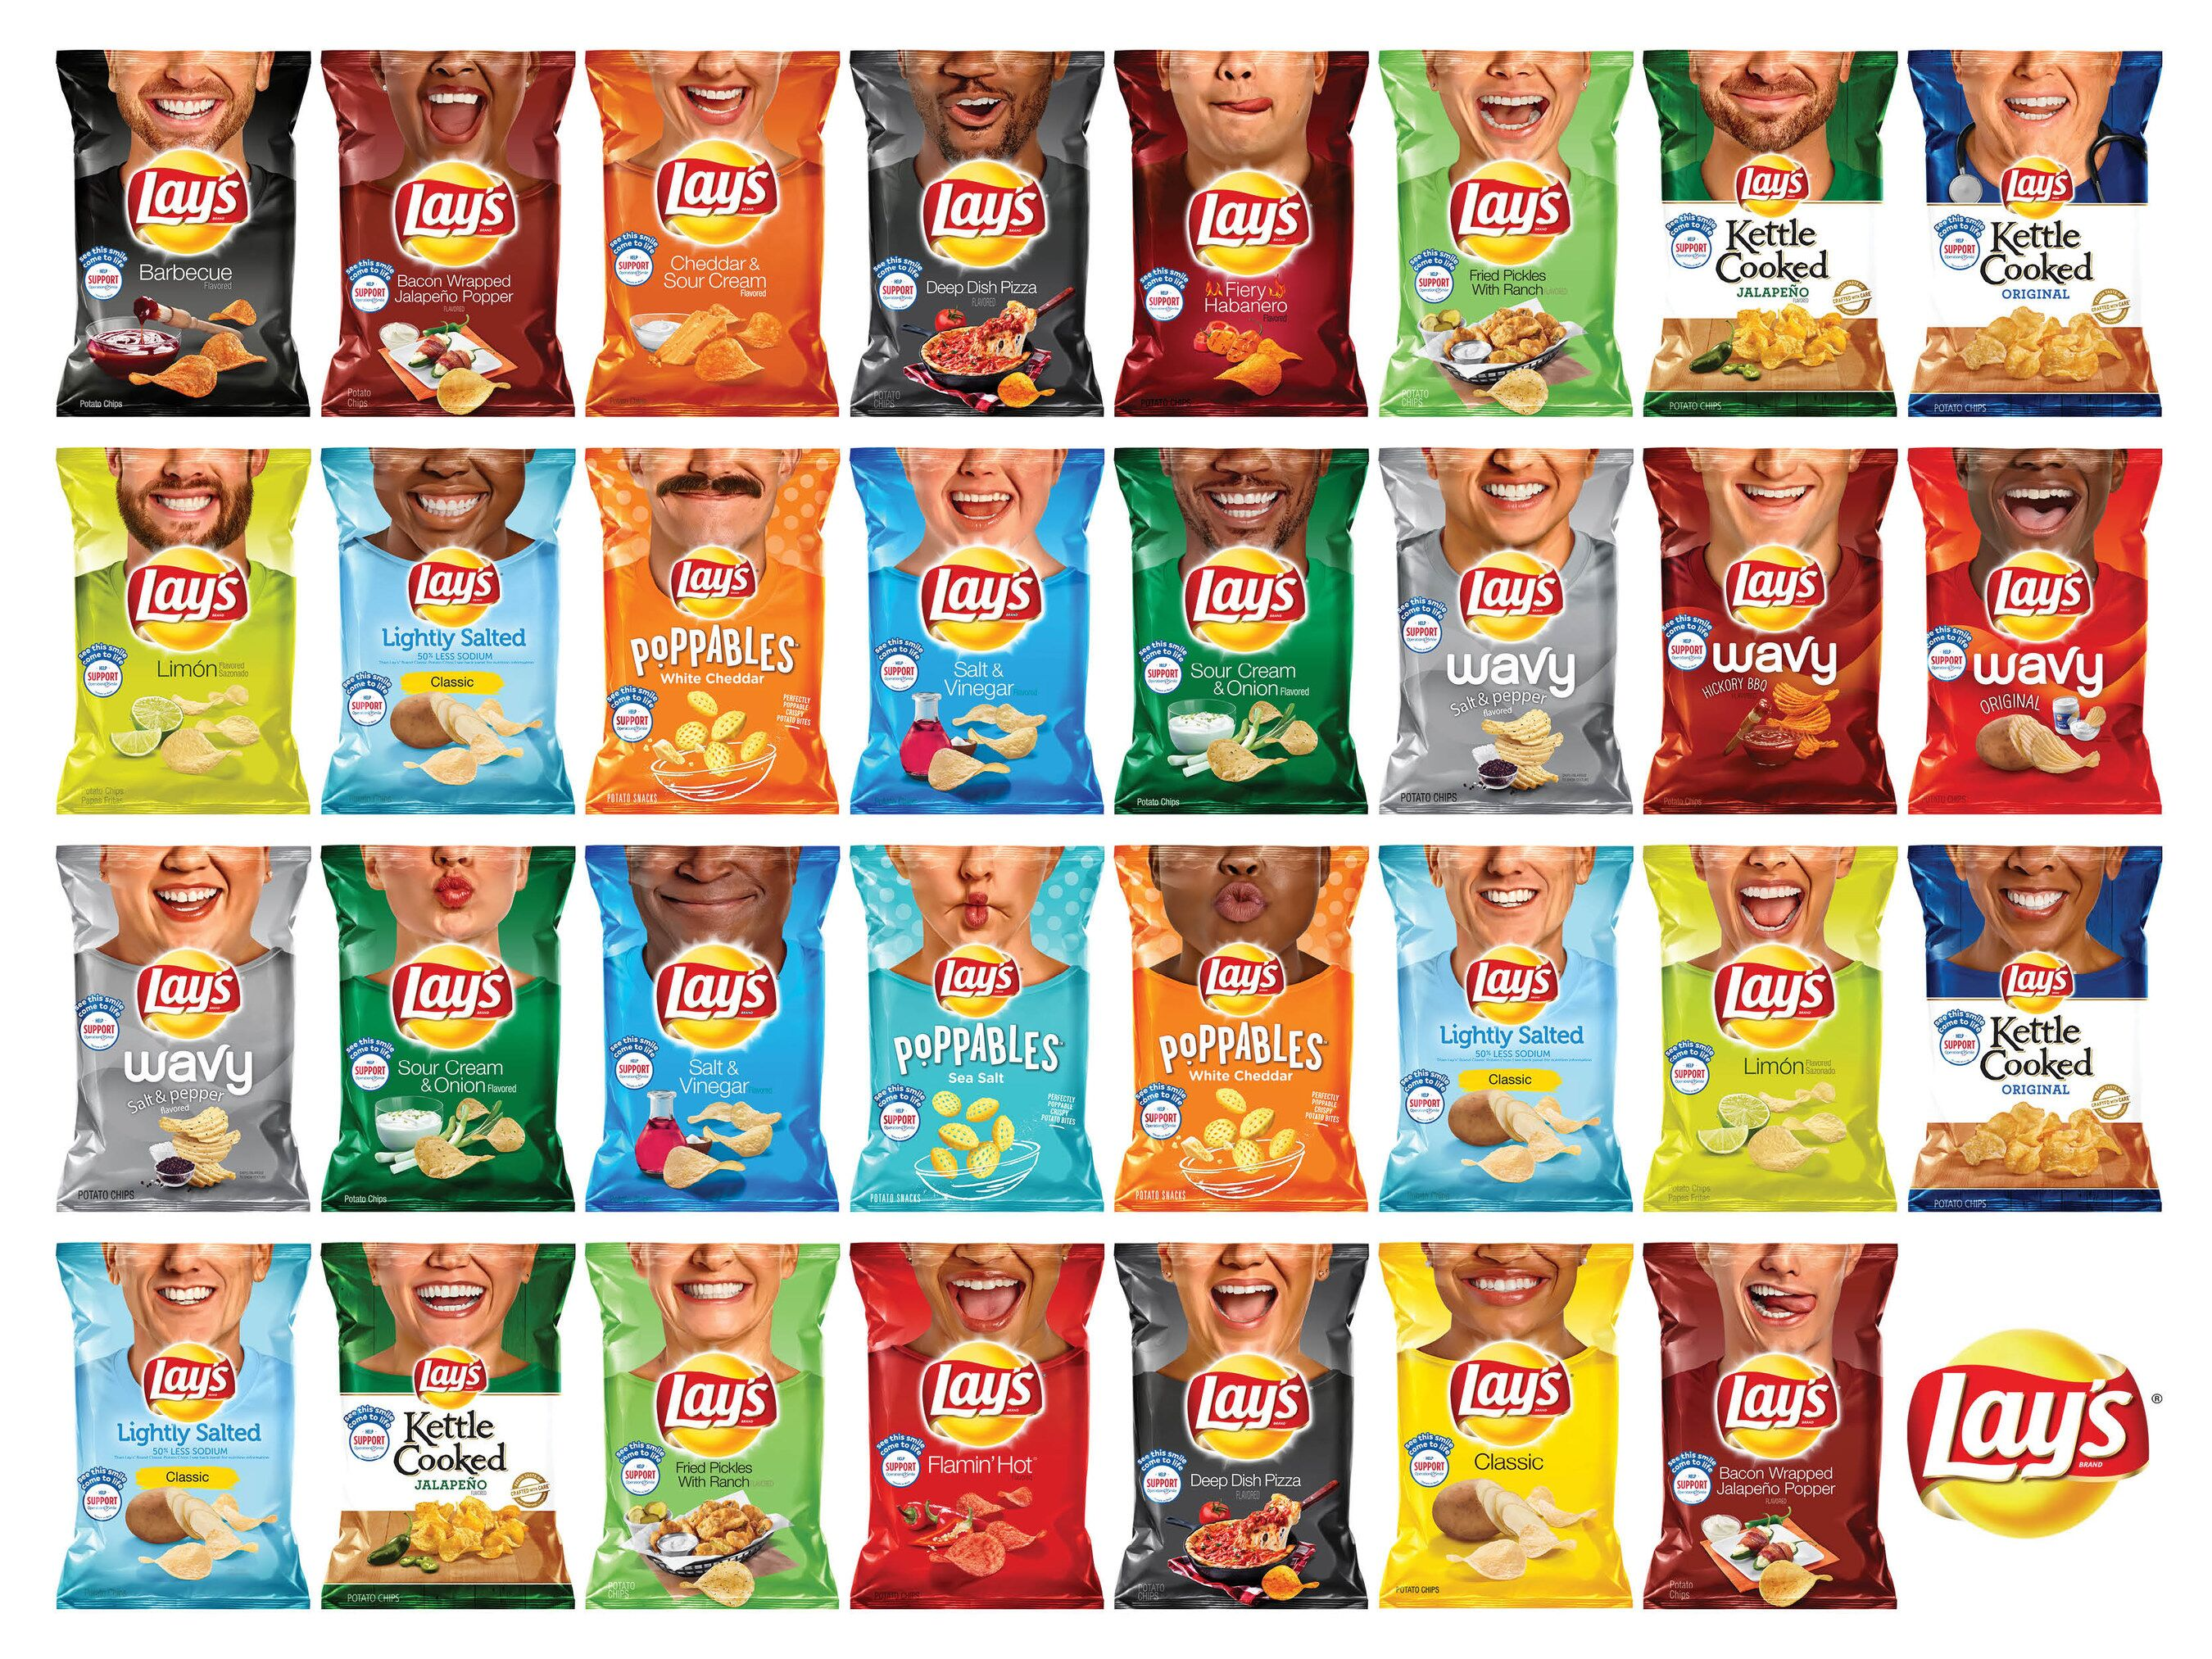 5 Snack trends that will change how you snack in 2020